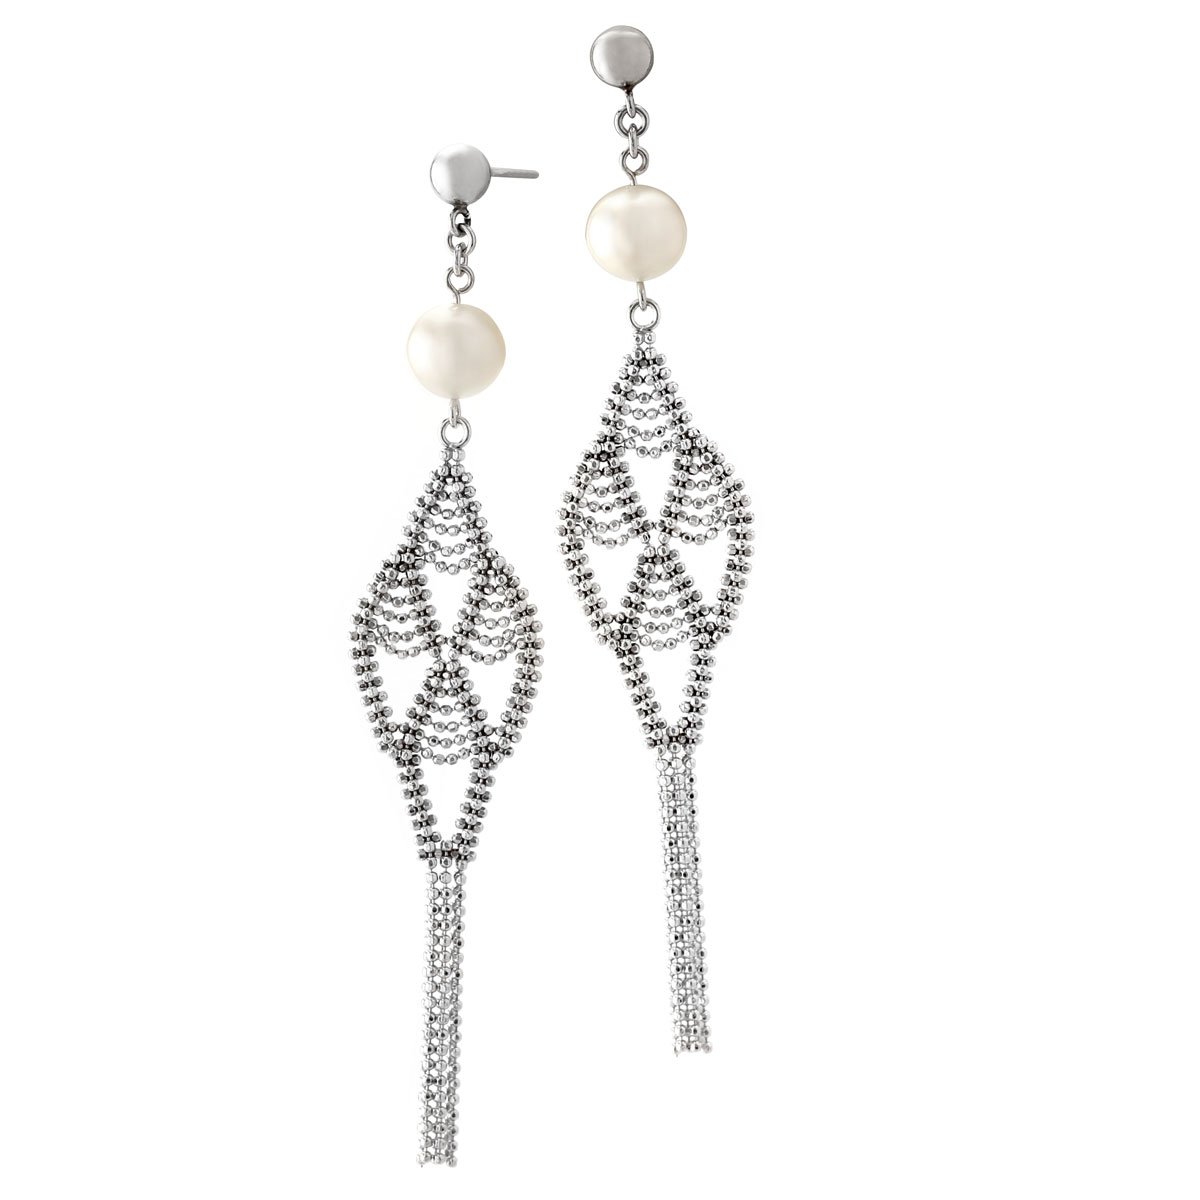 341329-Silver Lace and Pearl Earrings